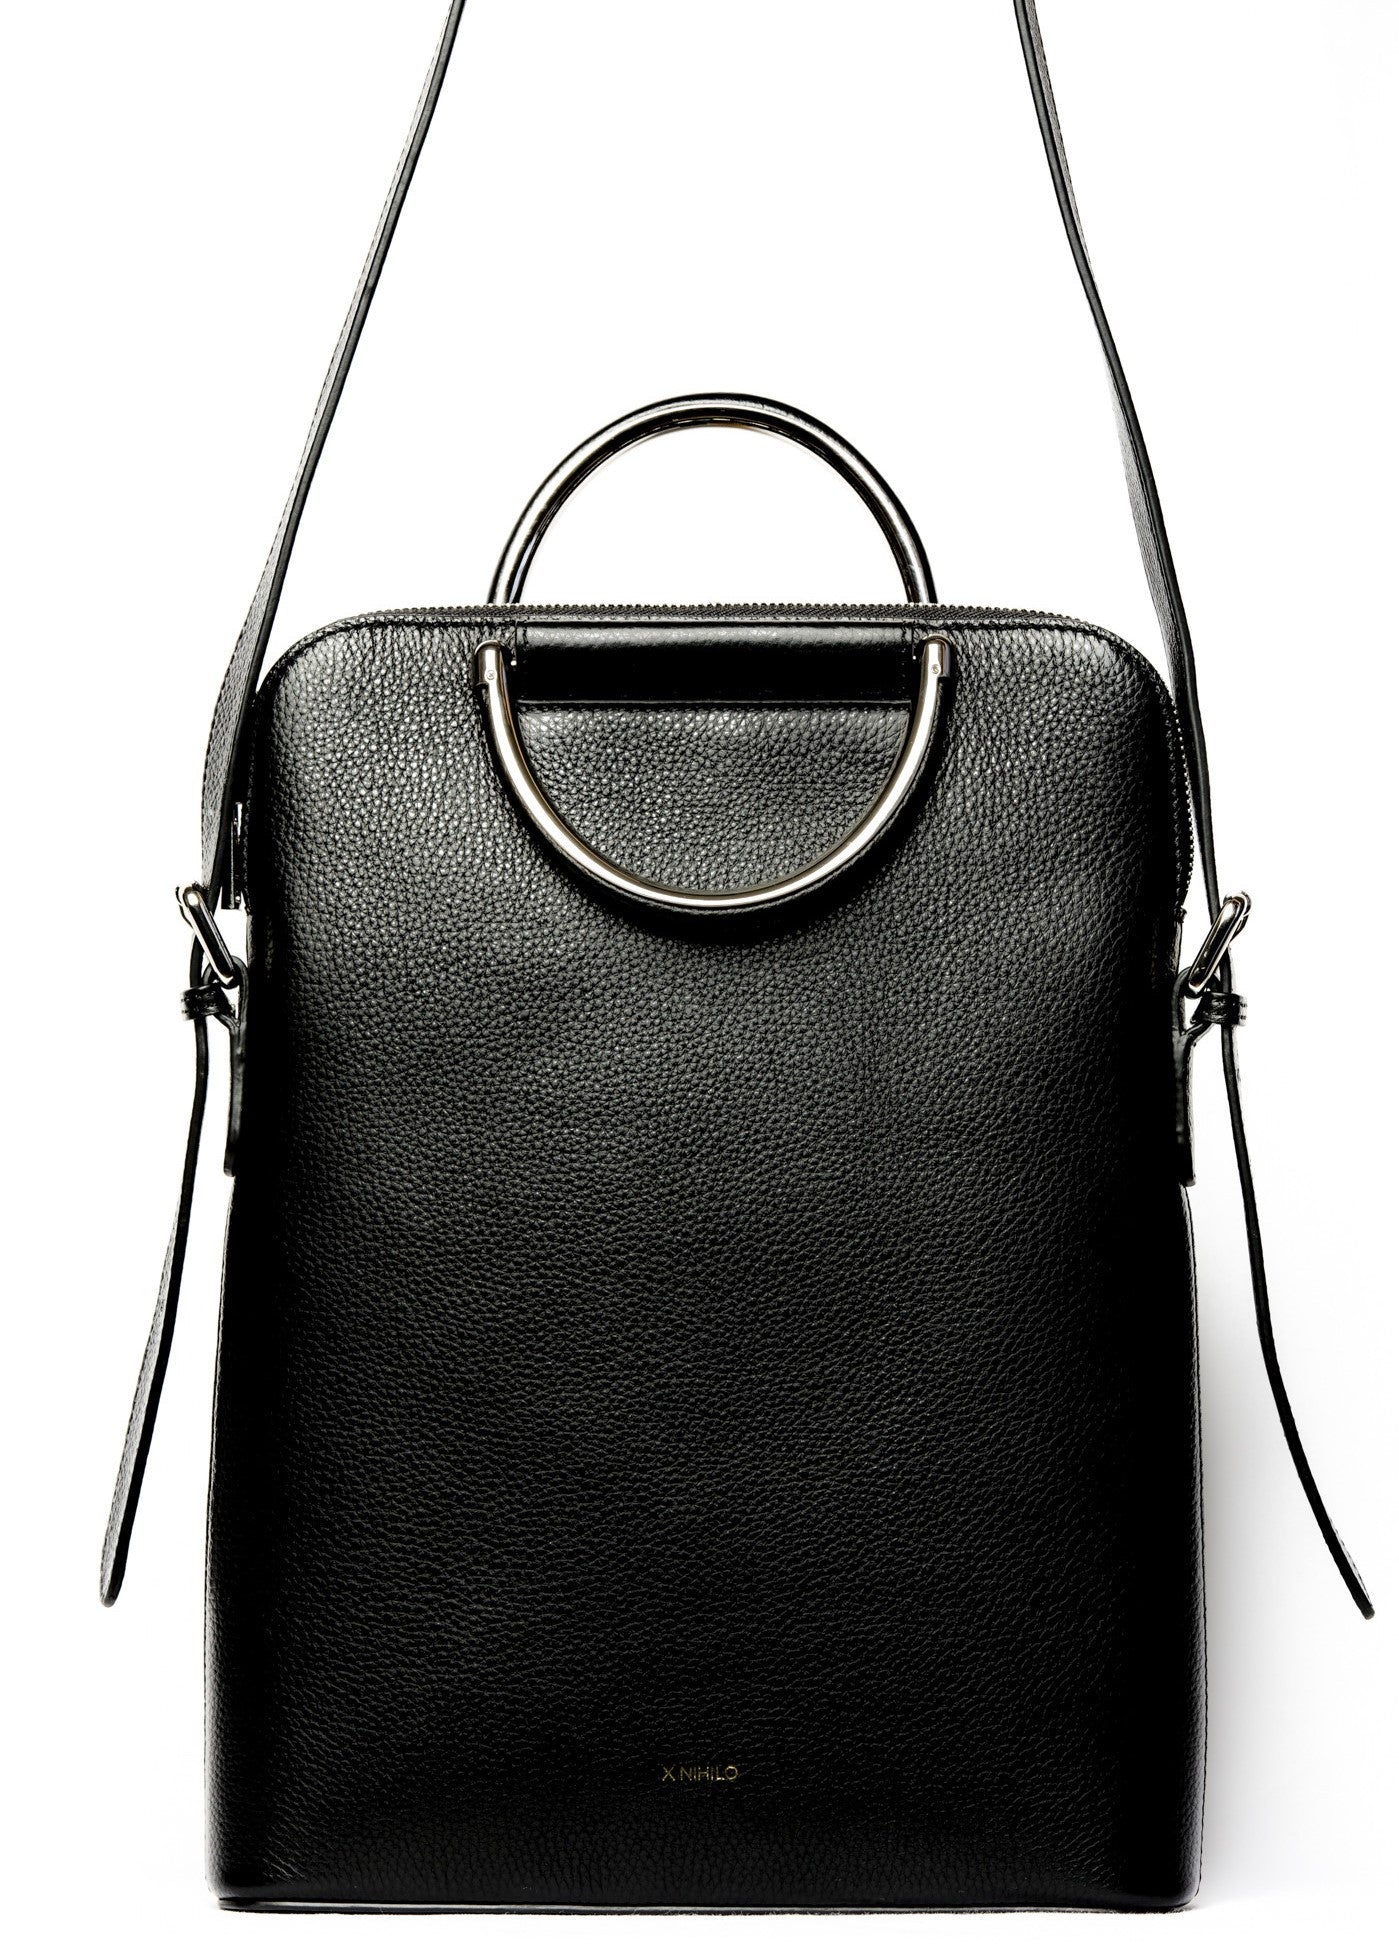 Xnihilo julie laptop bag black